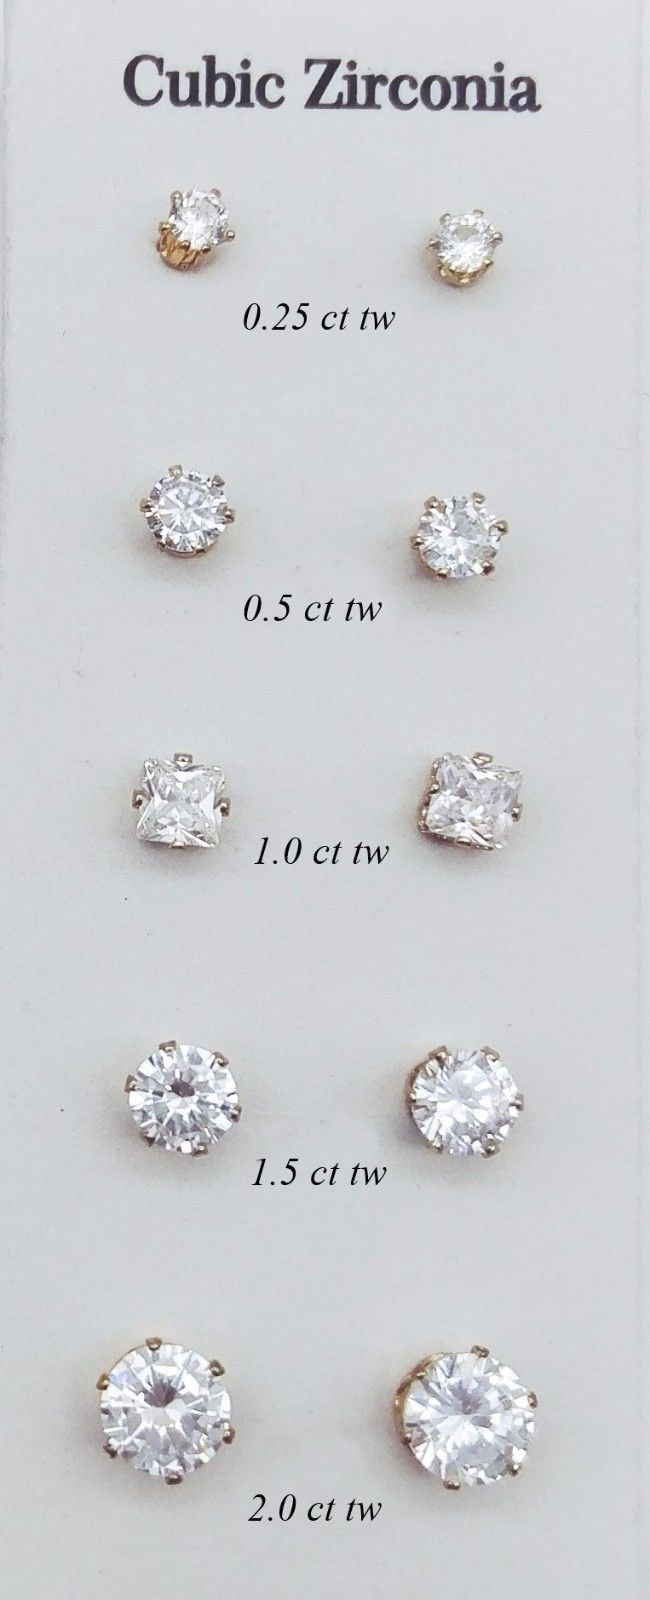 Men's Earrings Women's Cubic Zirconia Stud Earrings Gold Silver Cz Earrings 2015